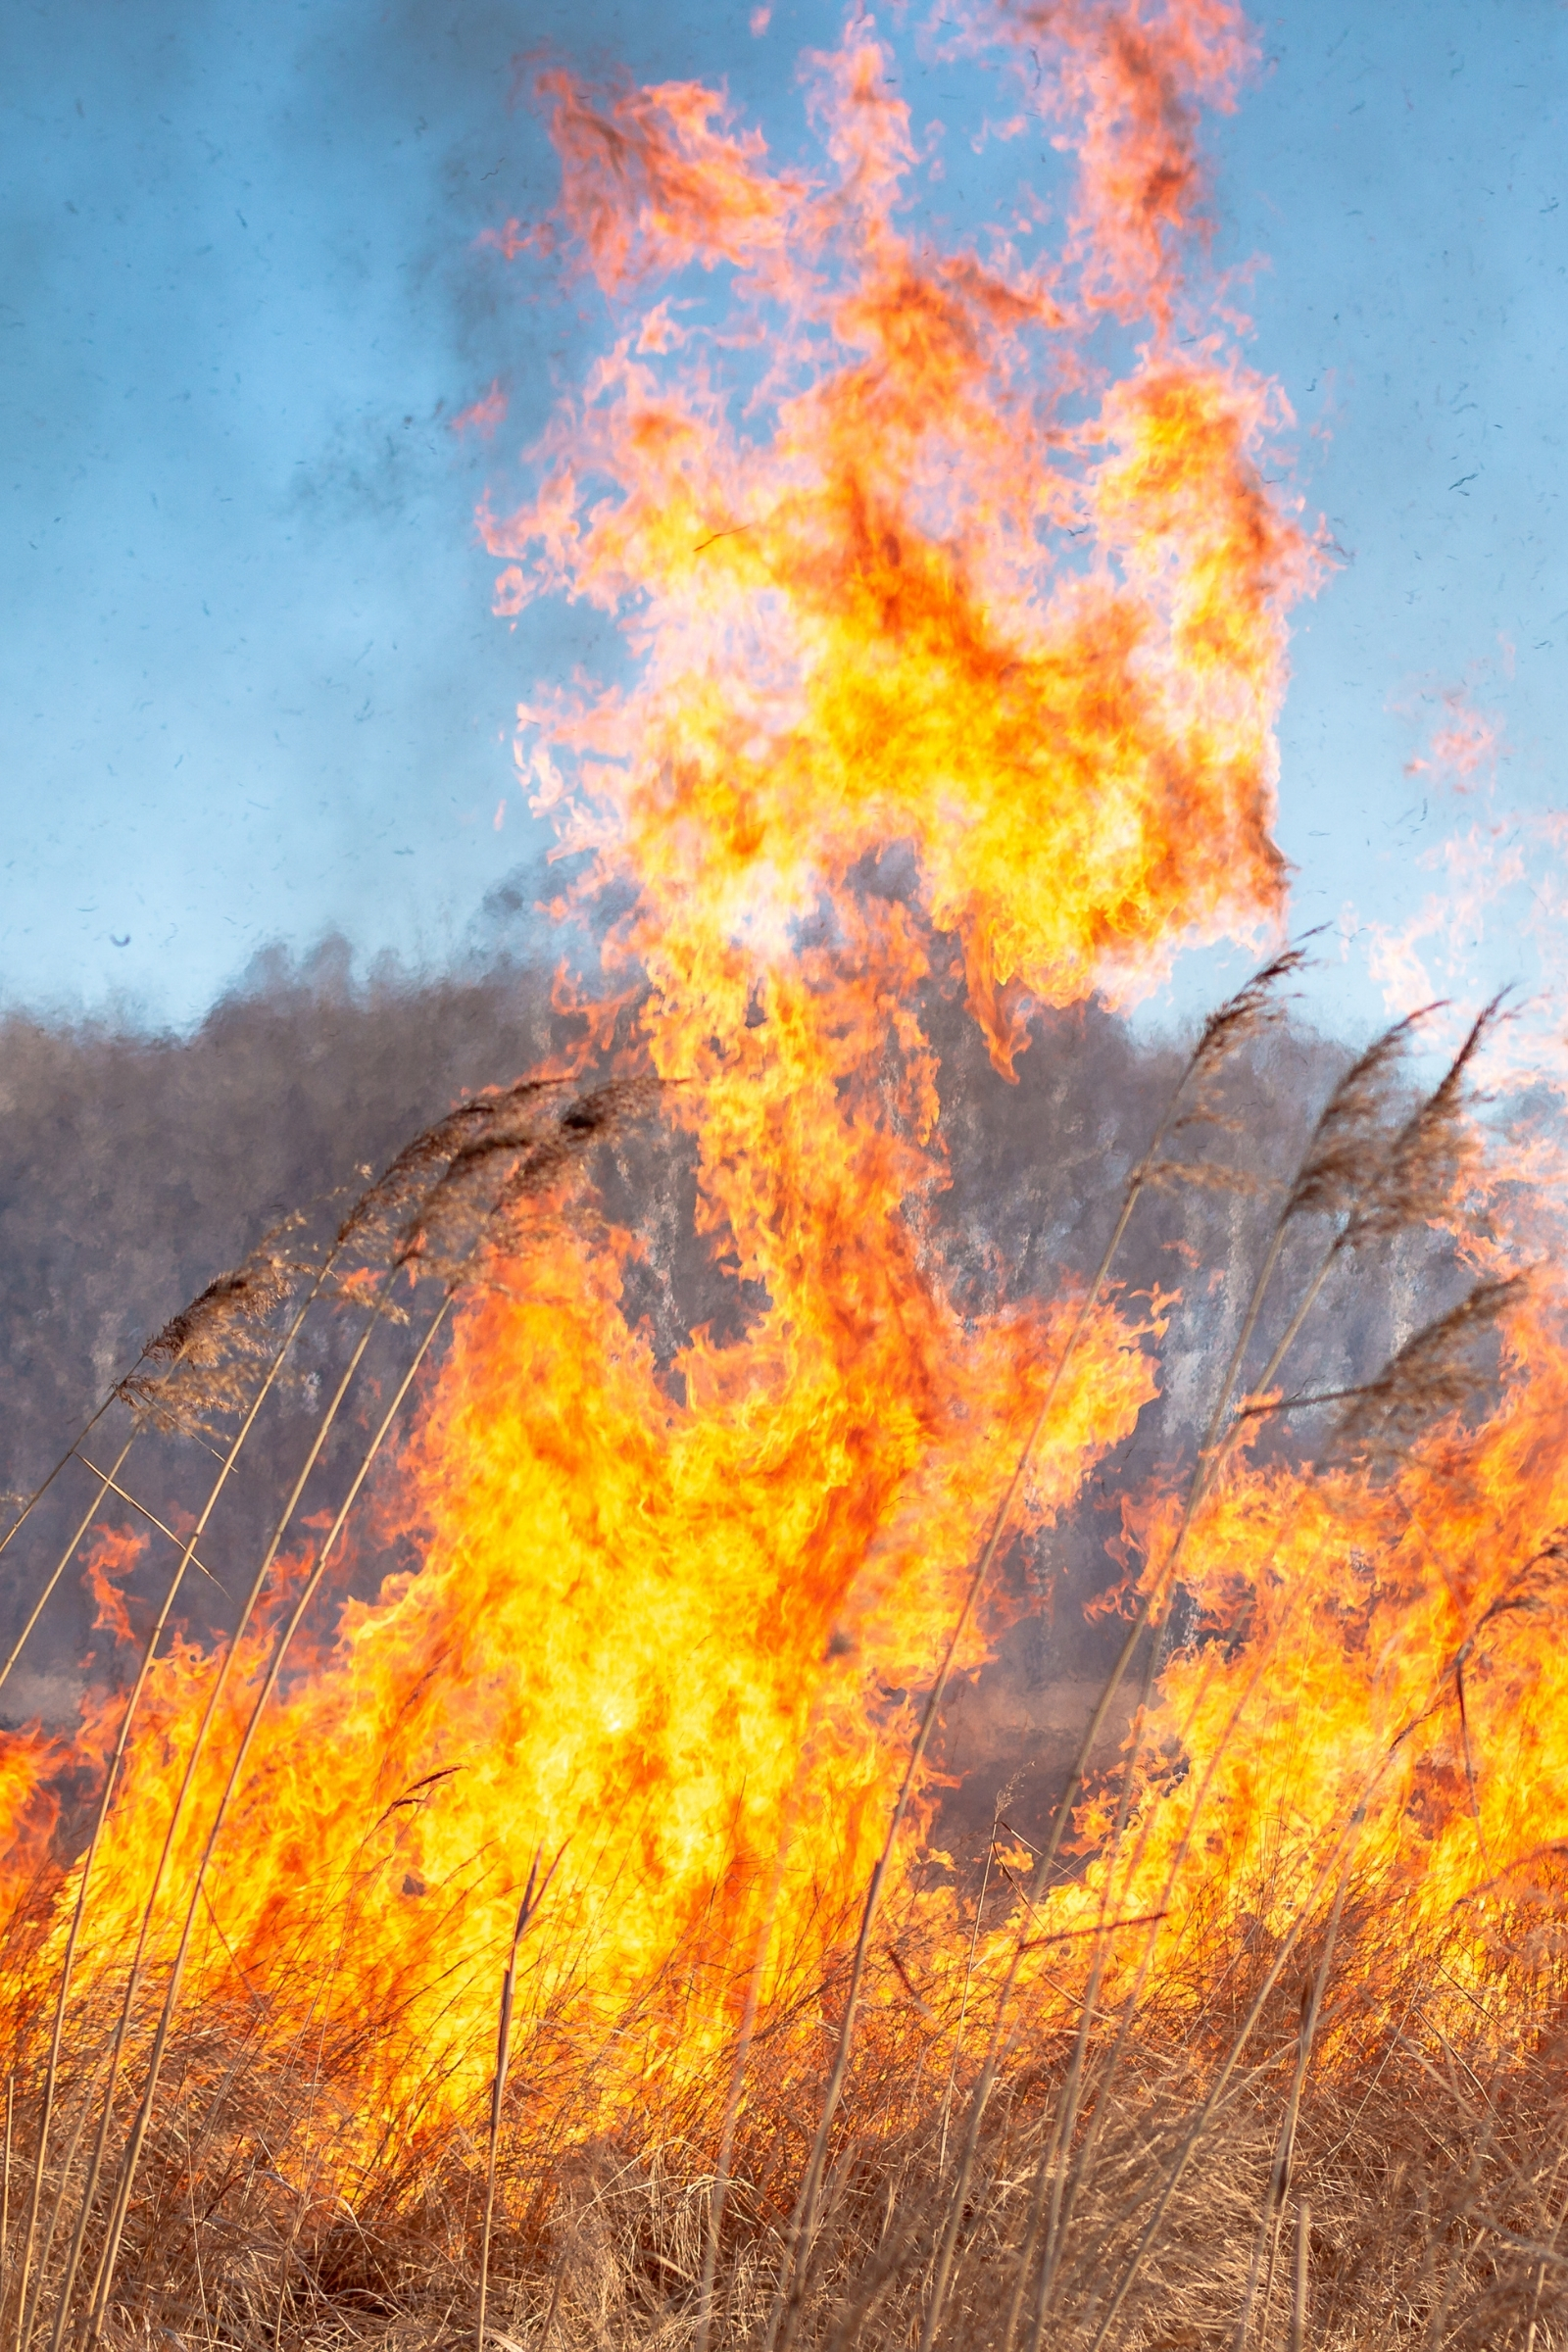 Fire safety in the bush